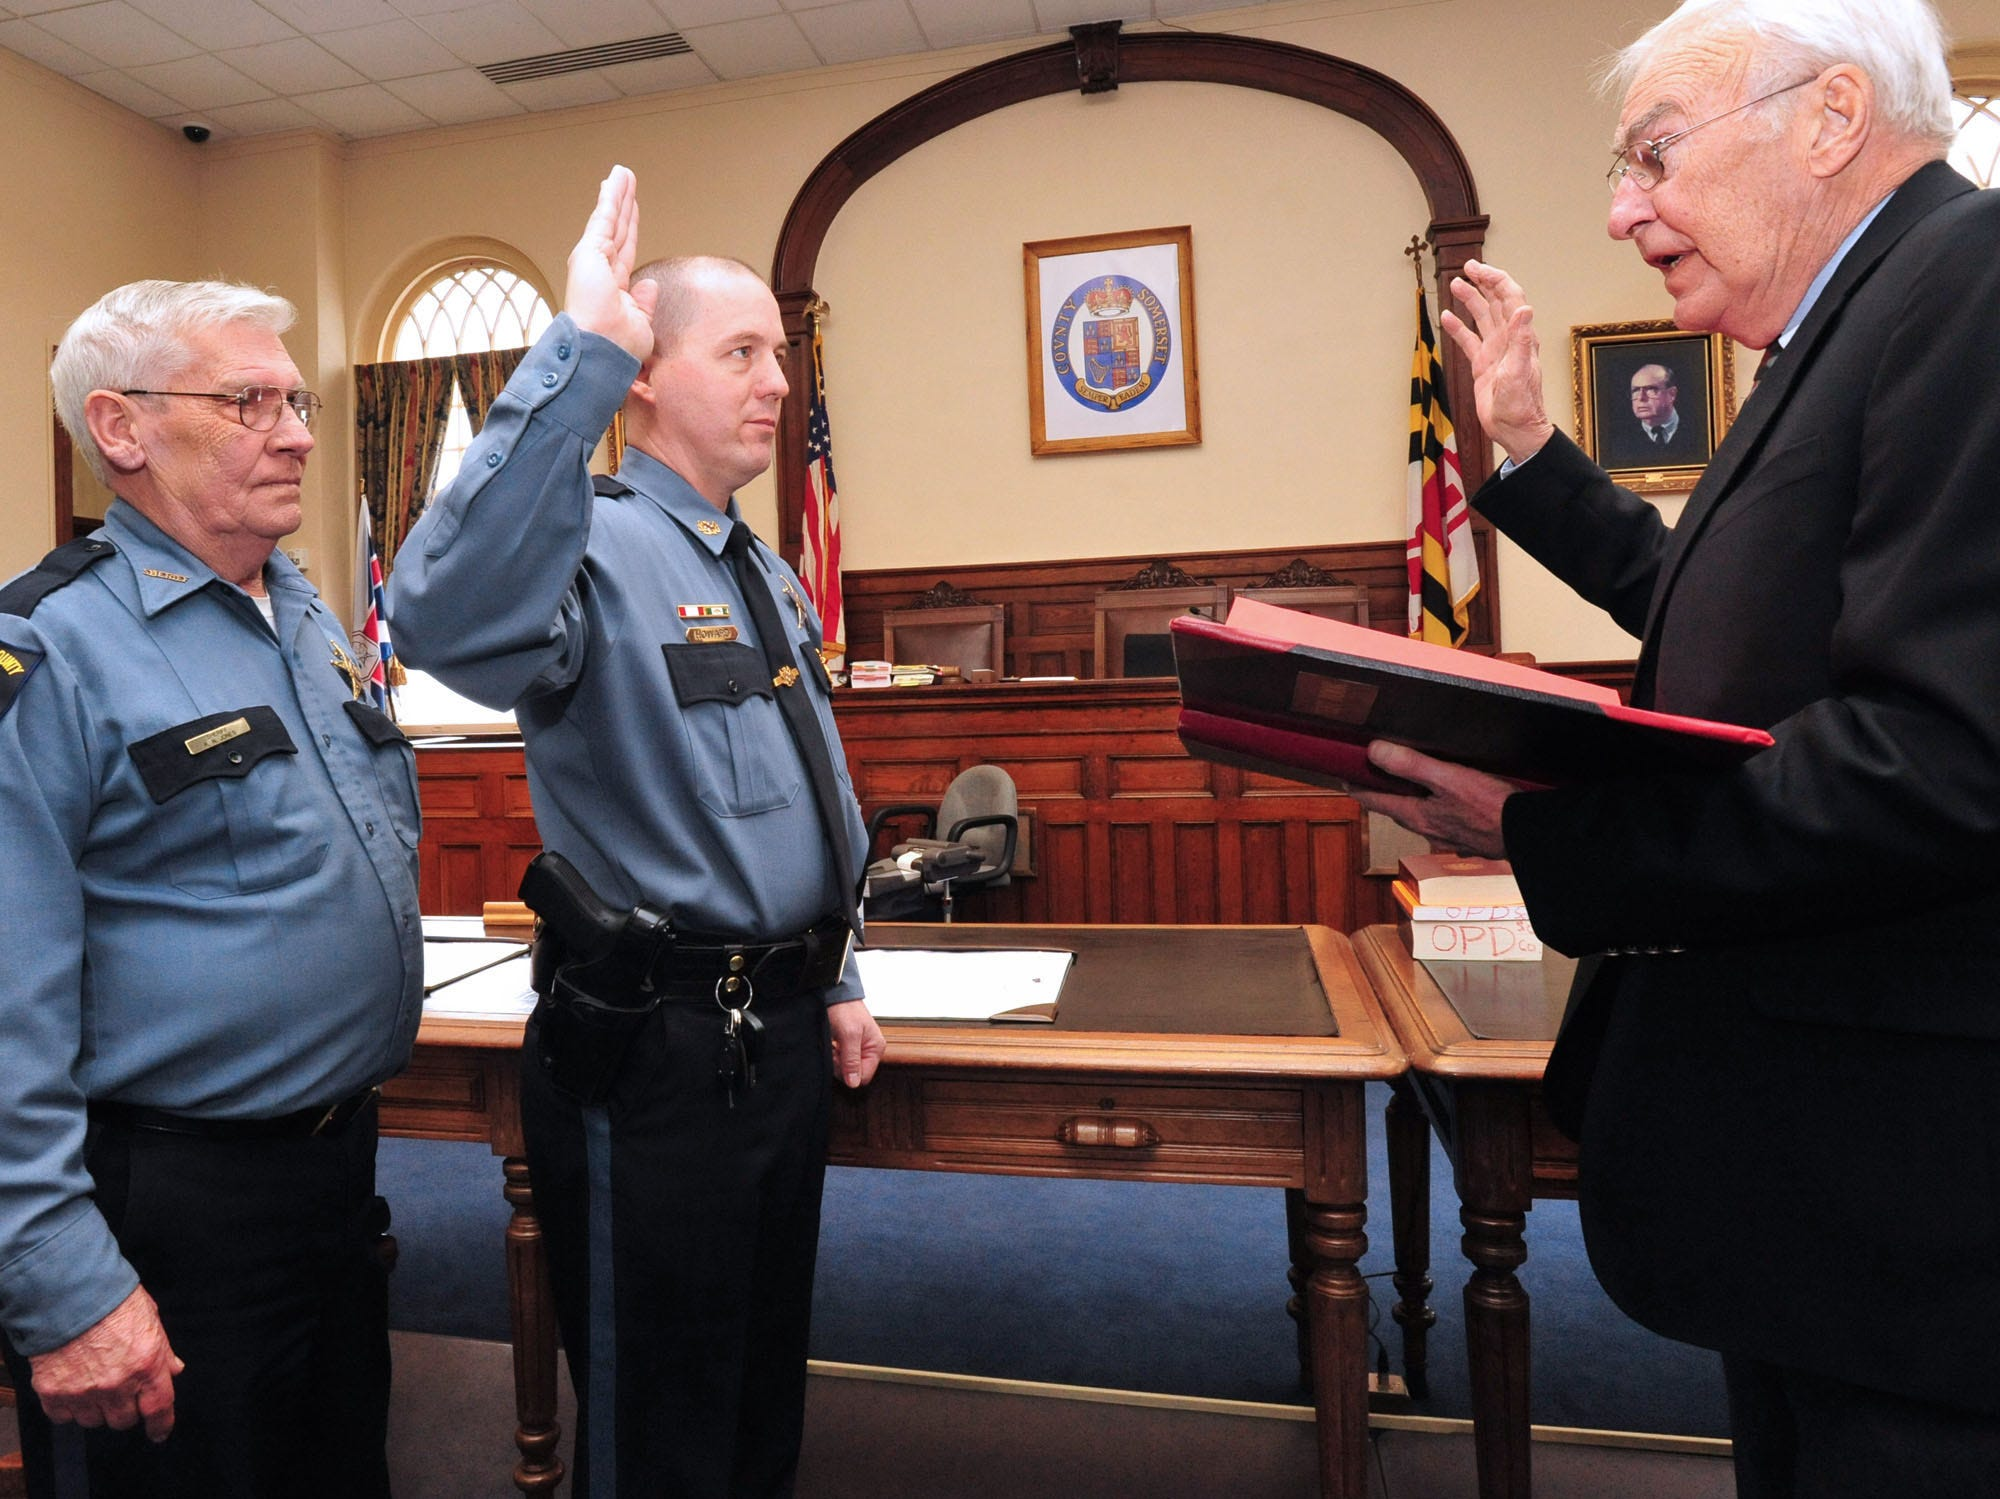 """Somerset County Sheriff Robert """"Bobby"""" Jones, left, looks on as Ronnie Howard, center, is sworn in as Chief Deputy of the Somerset County Sheriff's Office by Clerk of Court Ted Phoebus in 2010 at the courthouse in Princess Anne."""